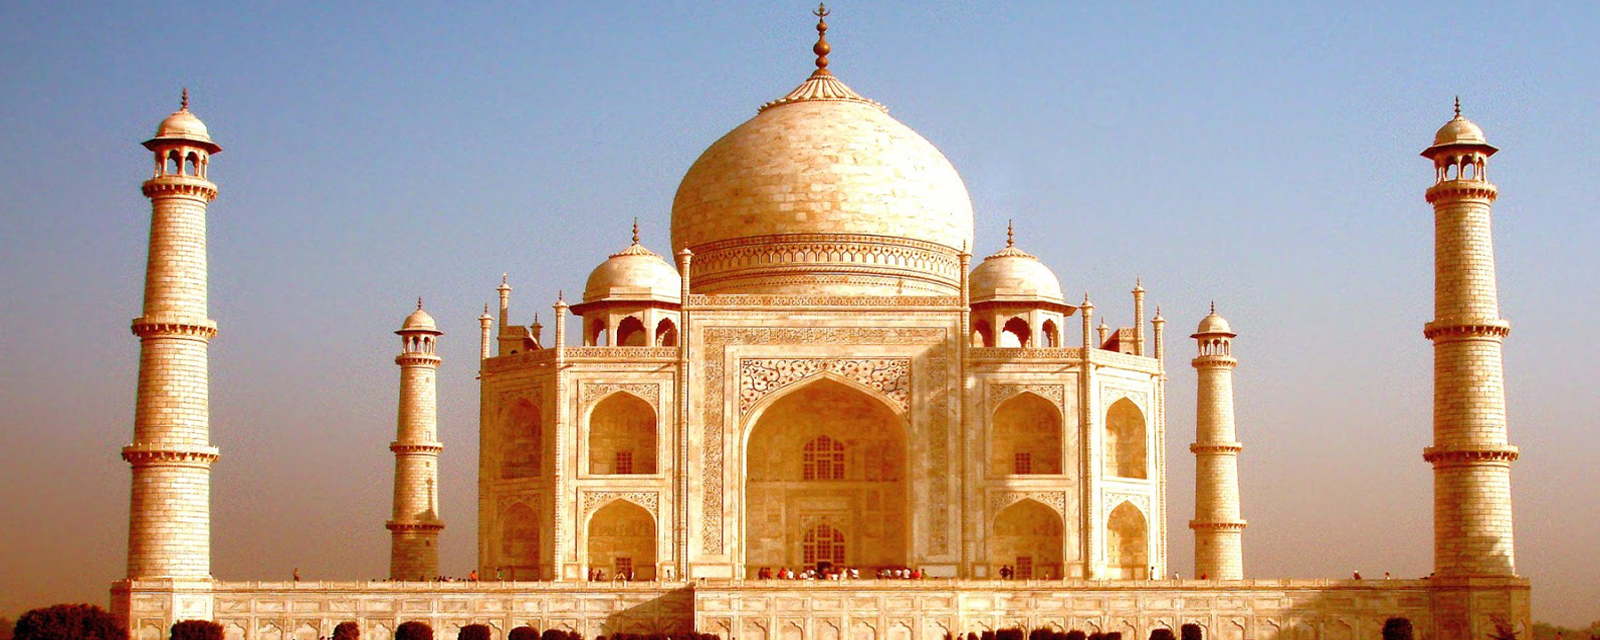 essay on visit to a historical place in india Prepare a report on my/ a visit to a historical place which the mughals had brought to india with them my visit to essay tags historical place, visit.